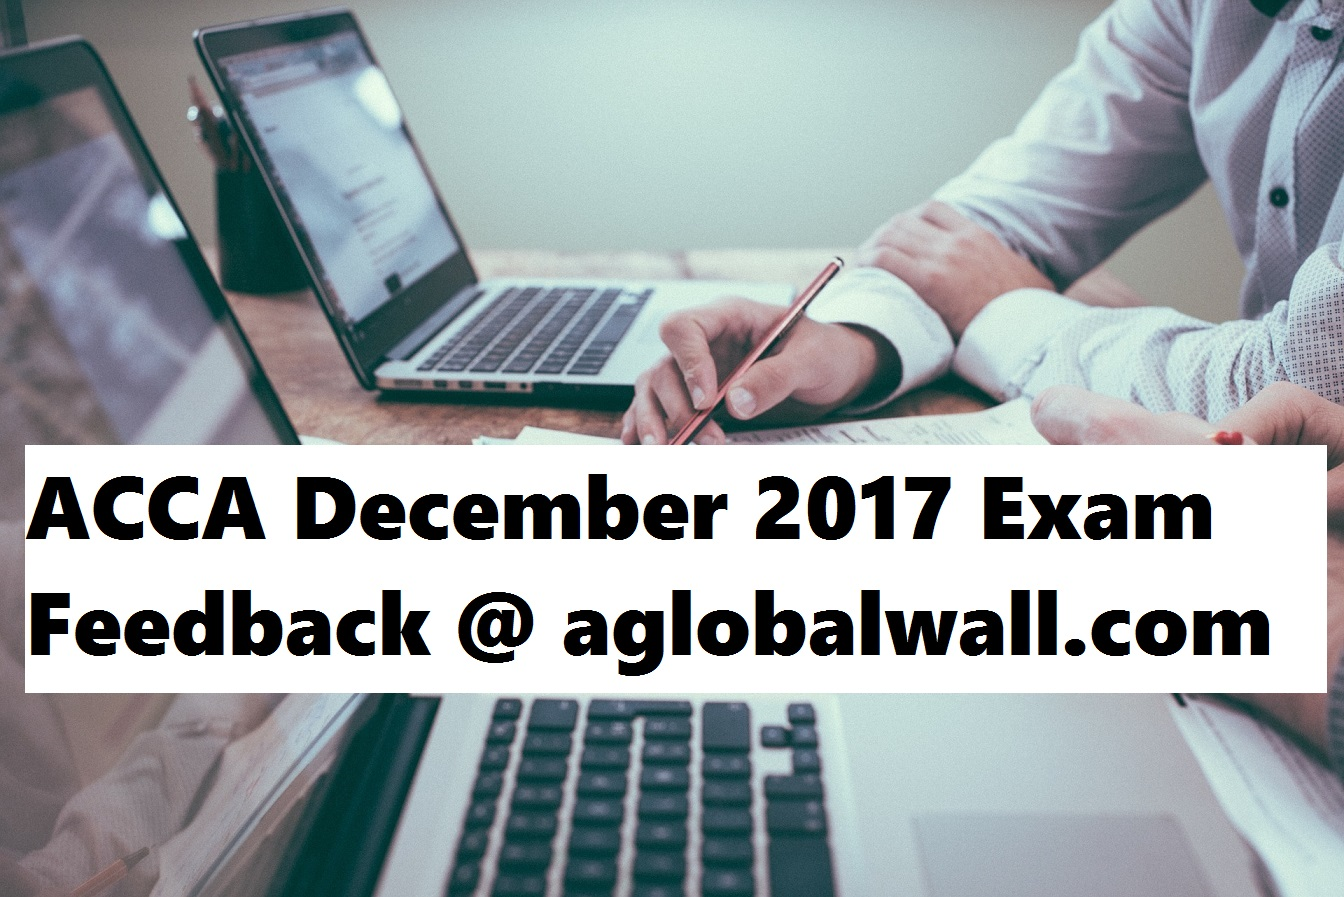 ACCA December 2017 Exam Feedback